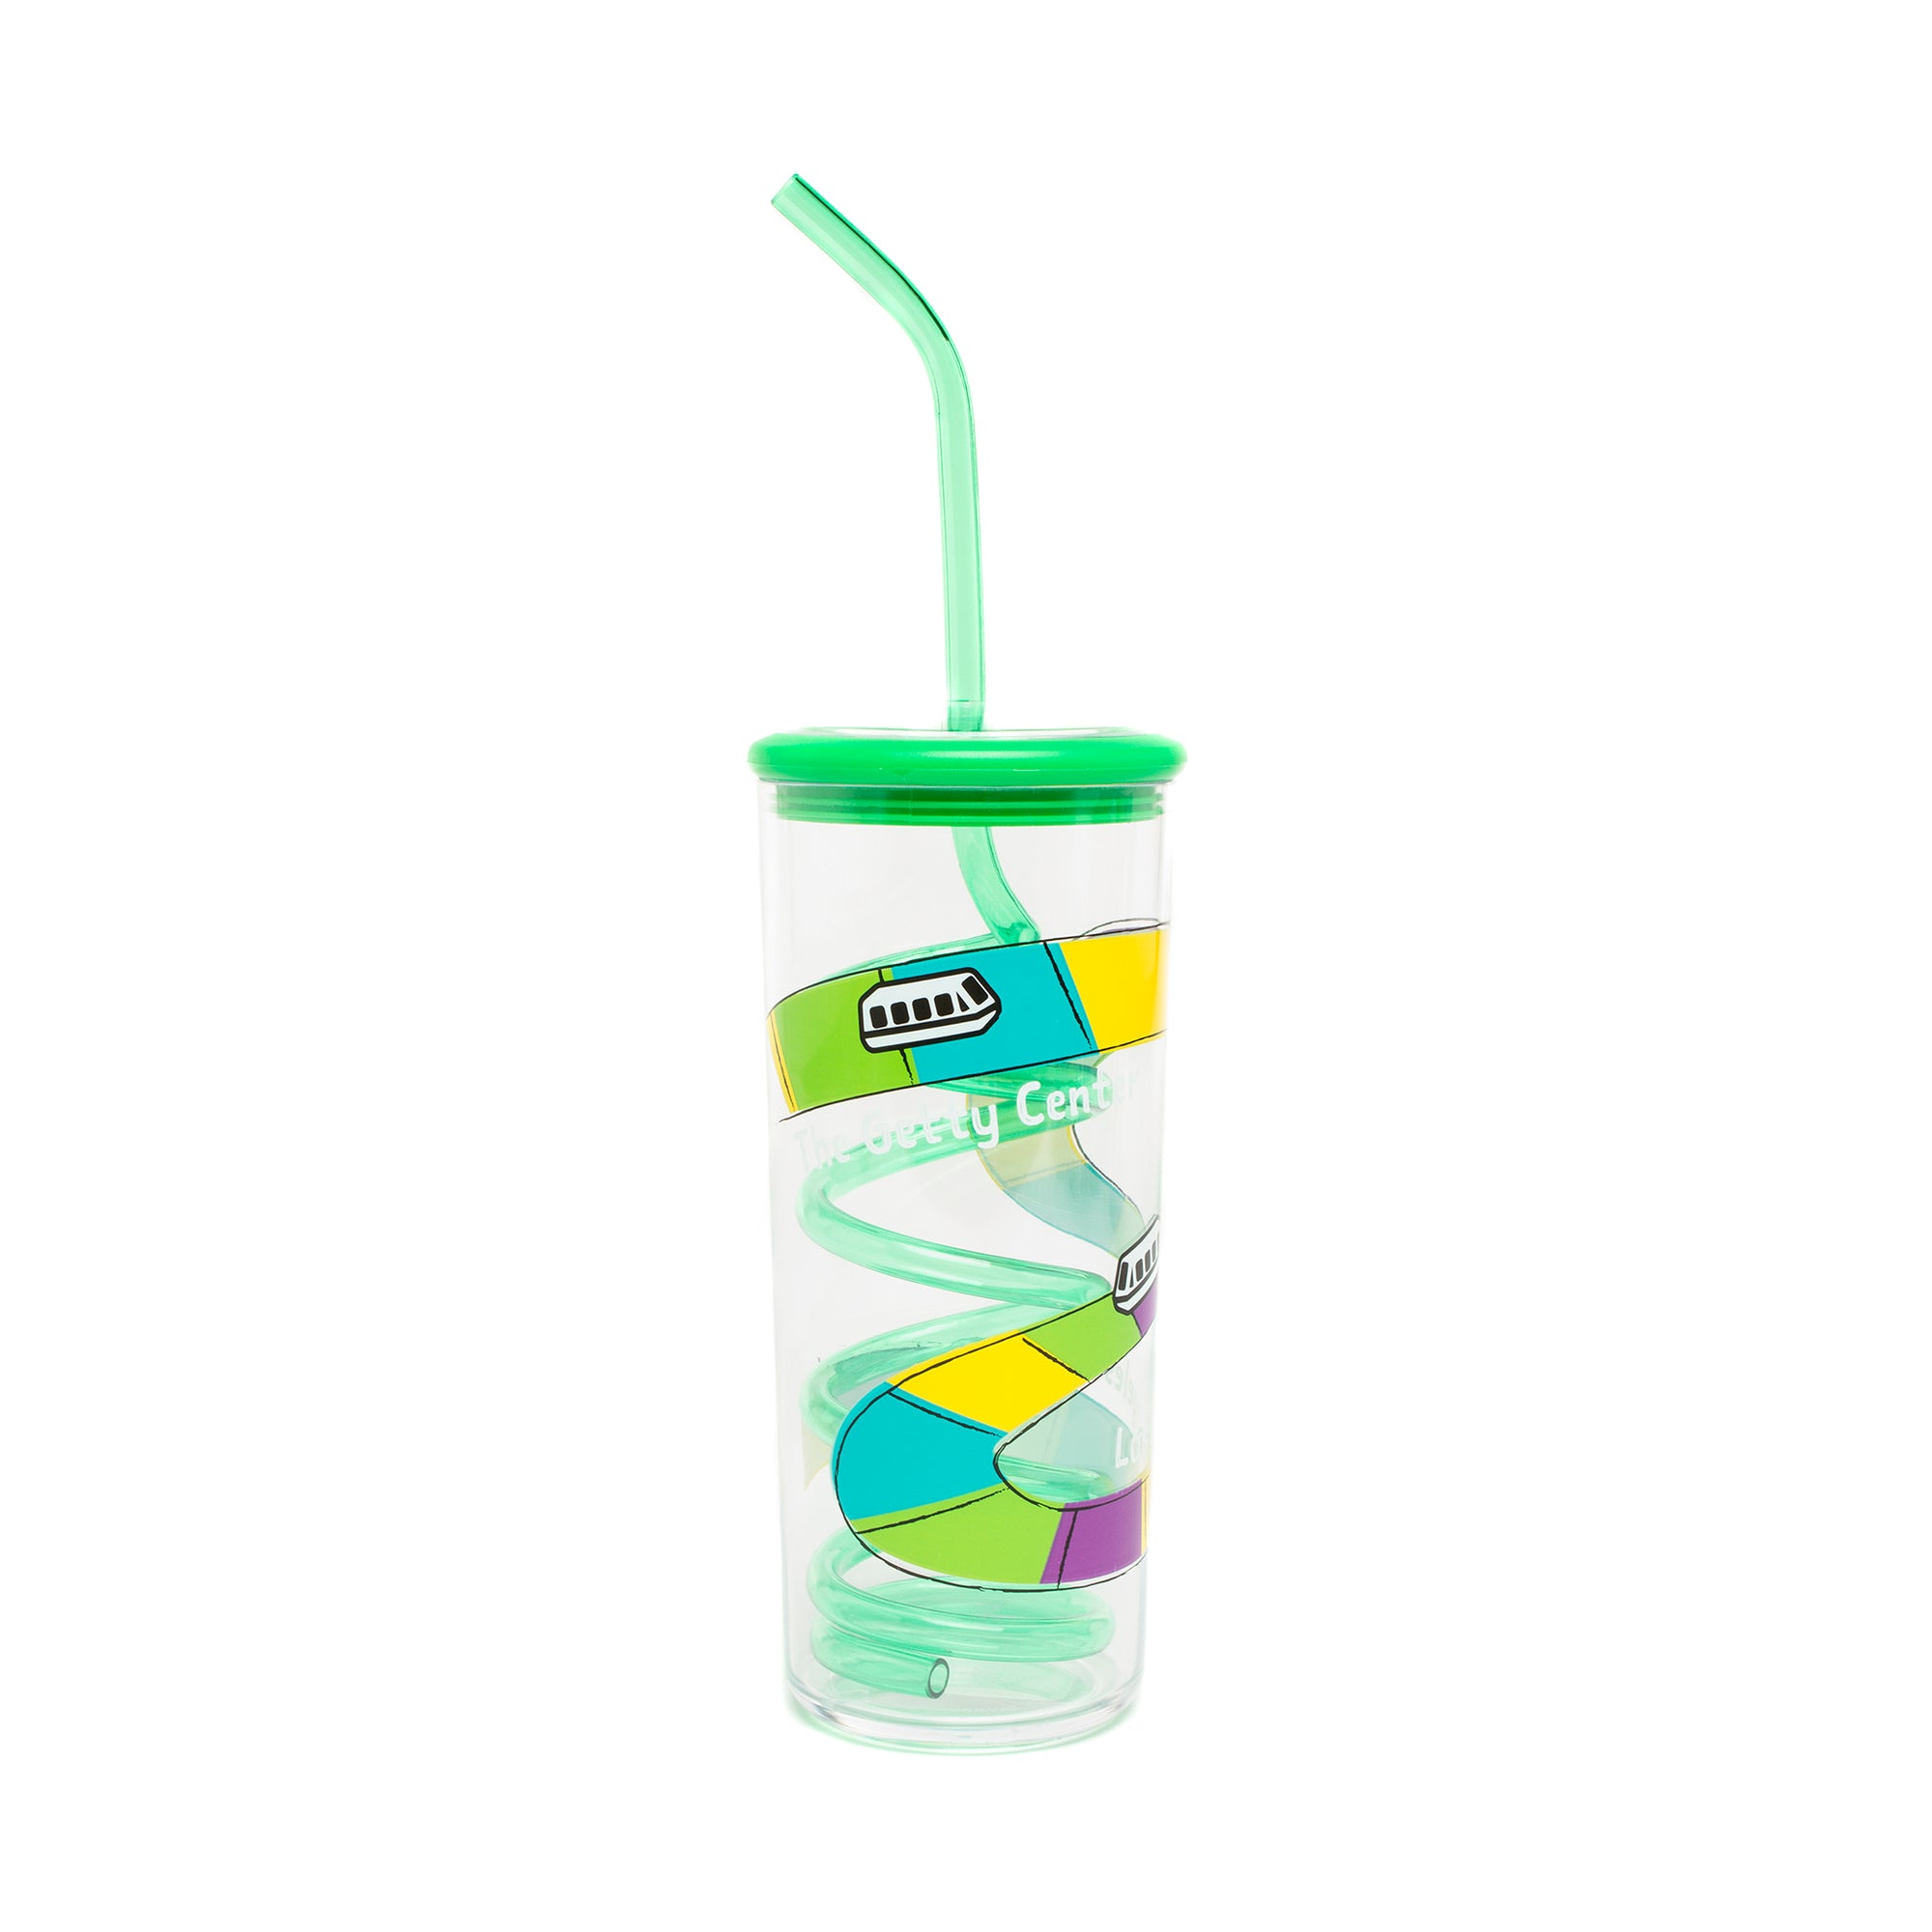 Getty Tram Silly Straw Cup | Getty Store